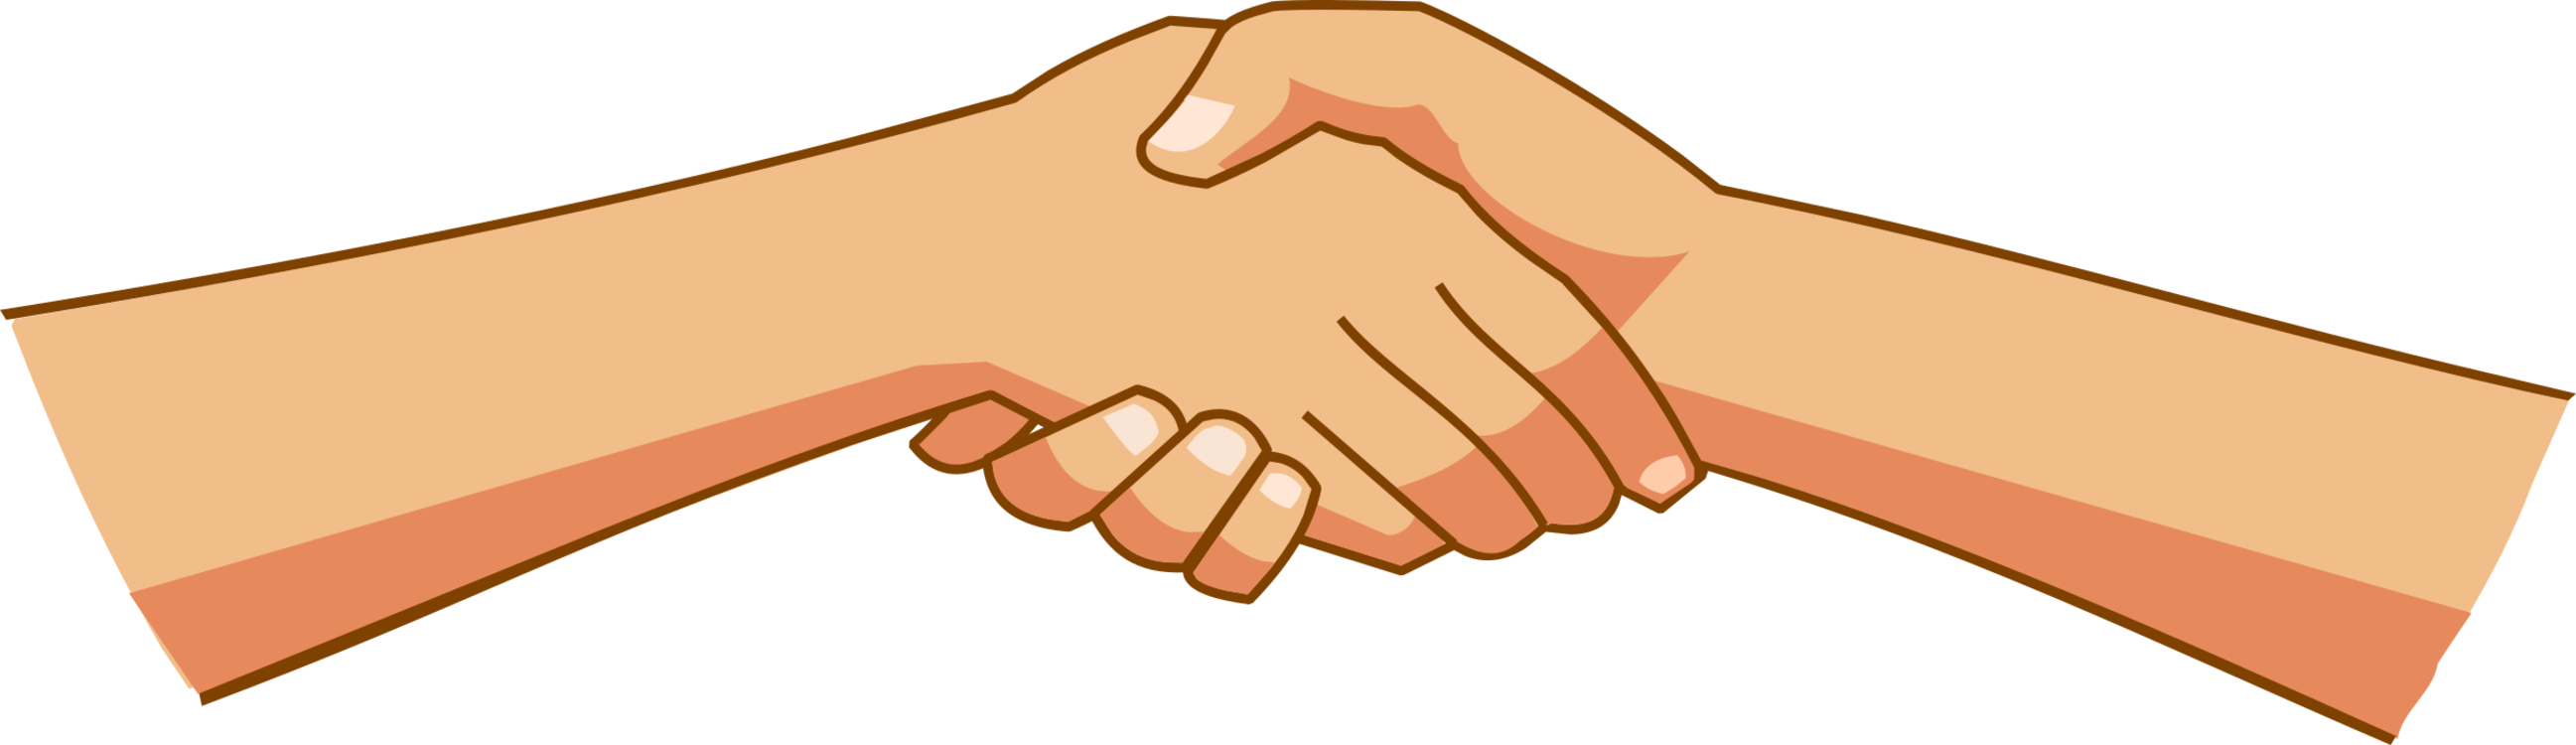 Handshake clipart. Computer icons arm download